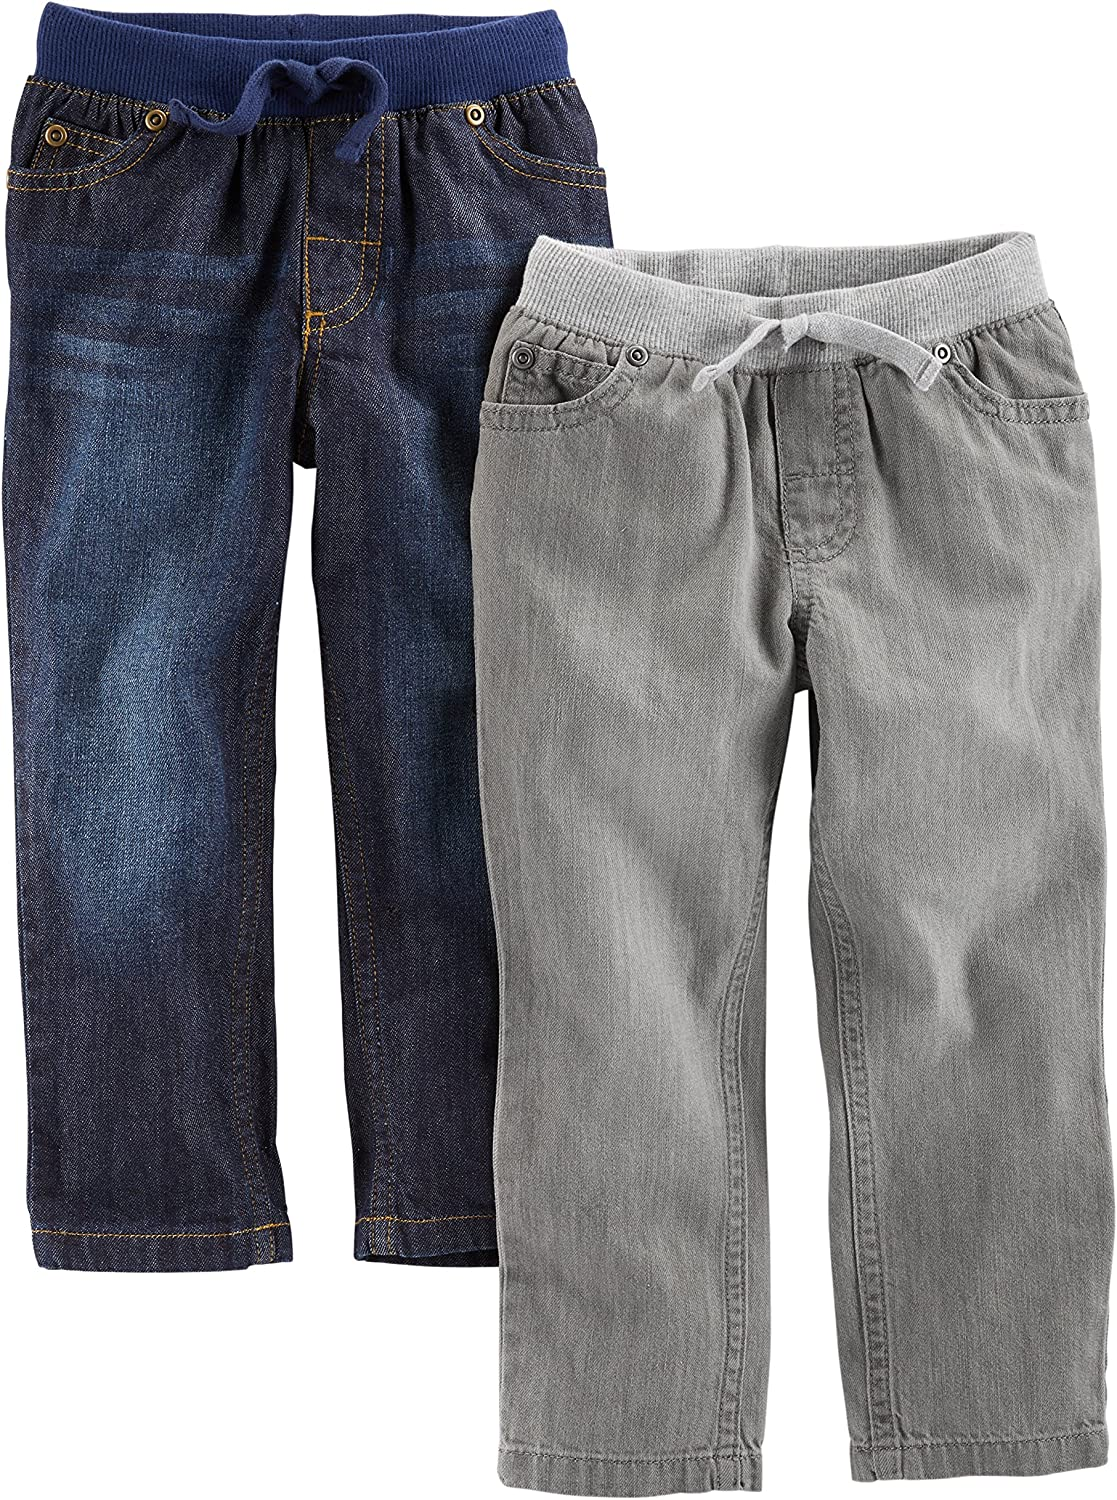 Simple Joys by Carter's Toddler Boys' 2-Pack Pull On Denim Pant: Clothing